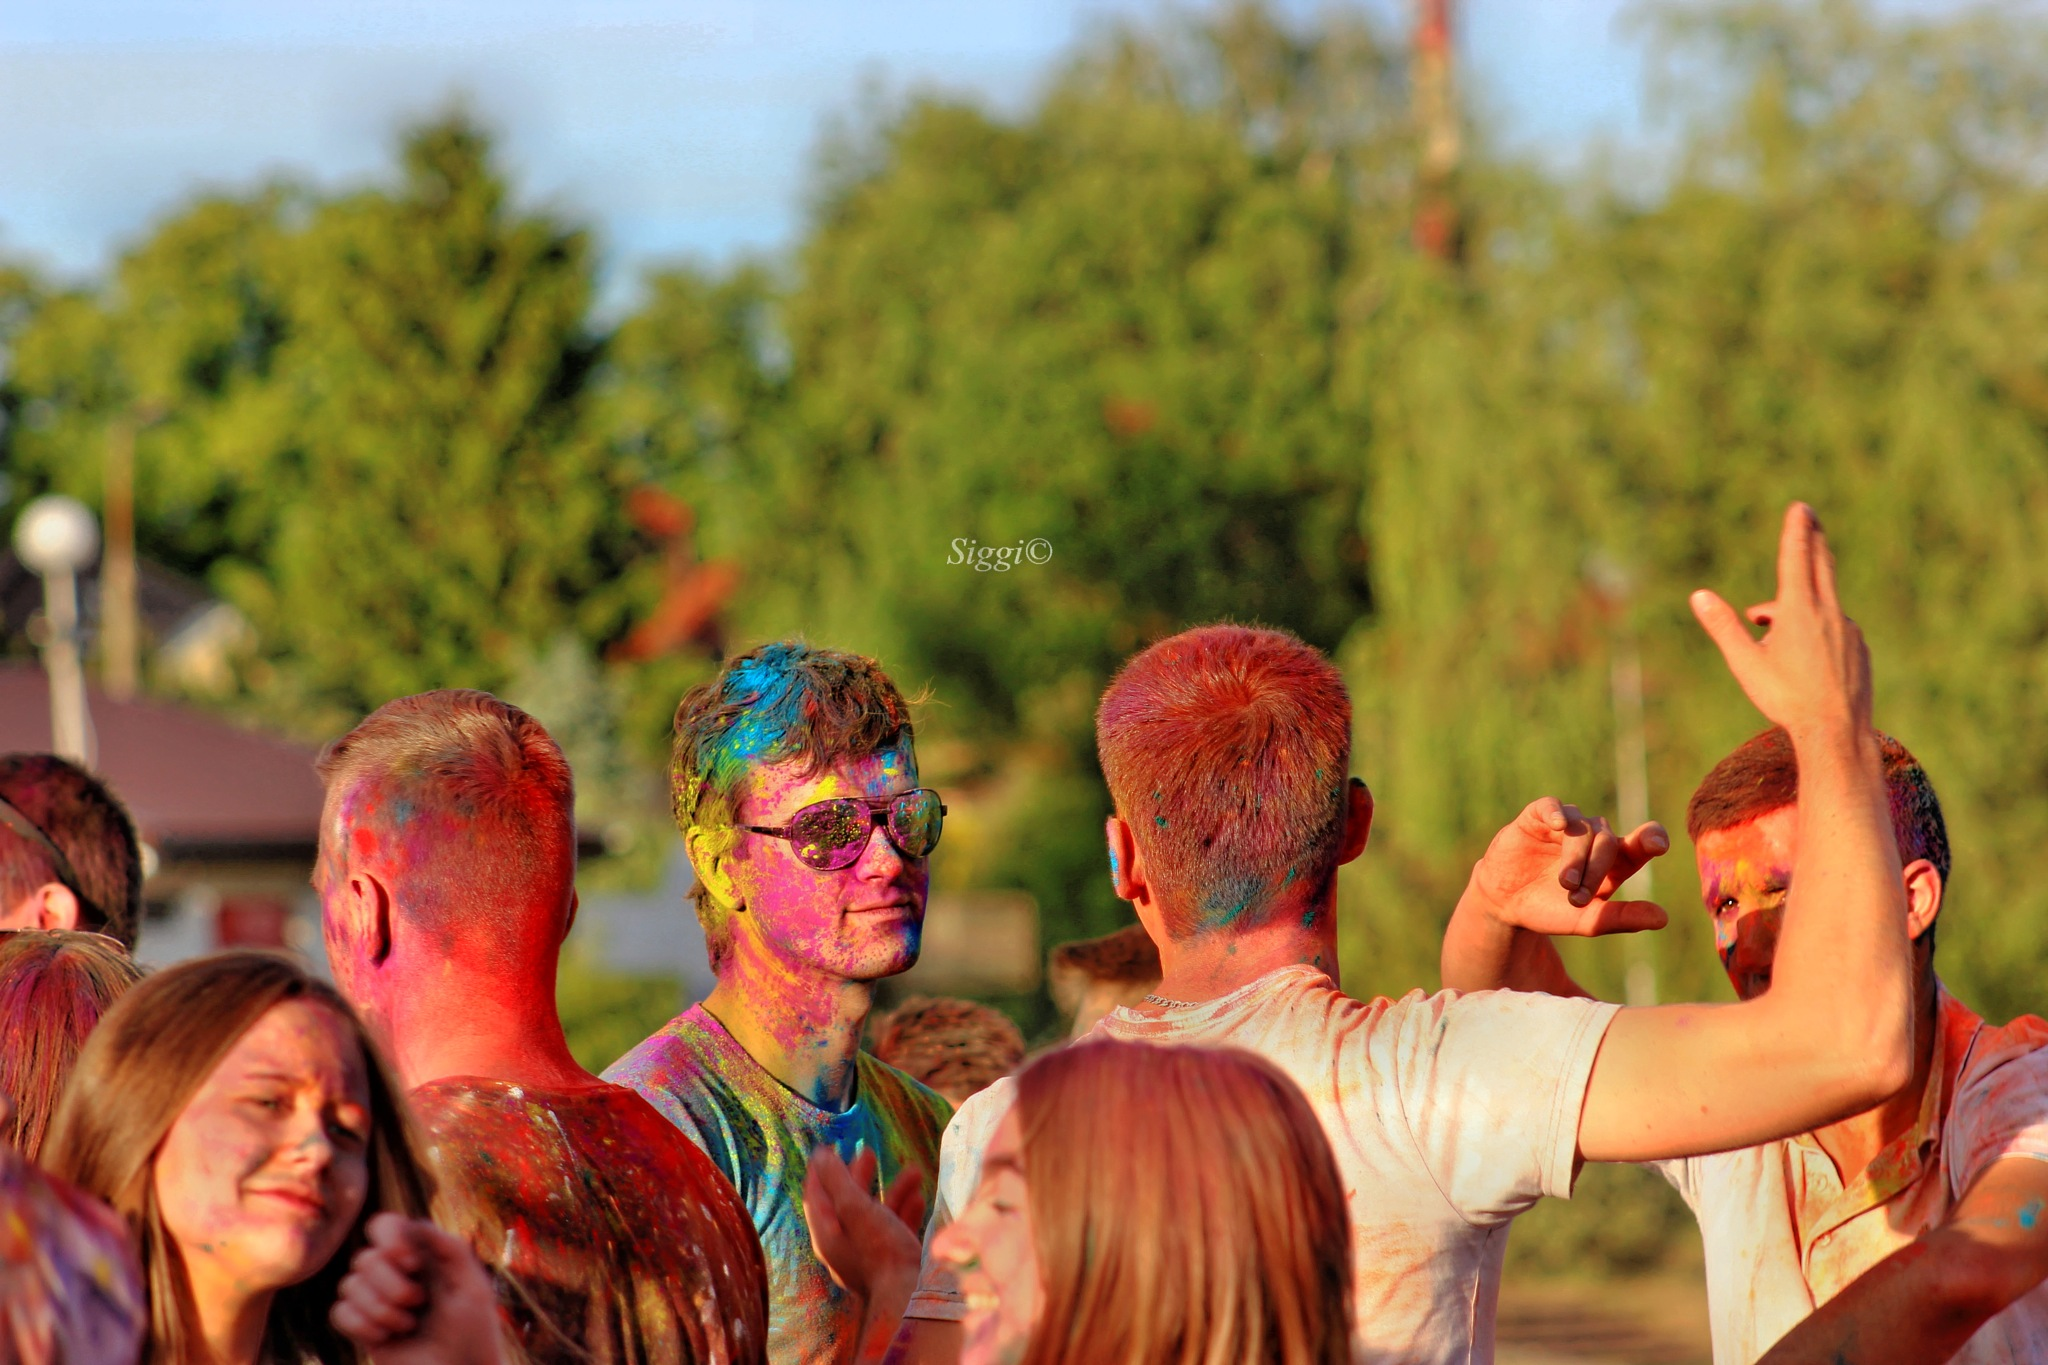 Boy in color! by Zbigniew©